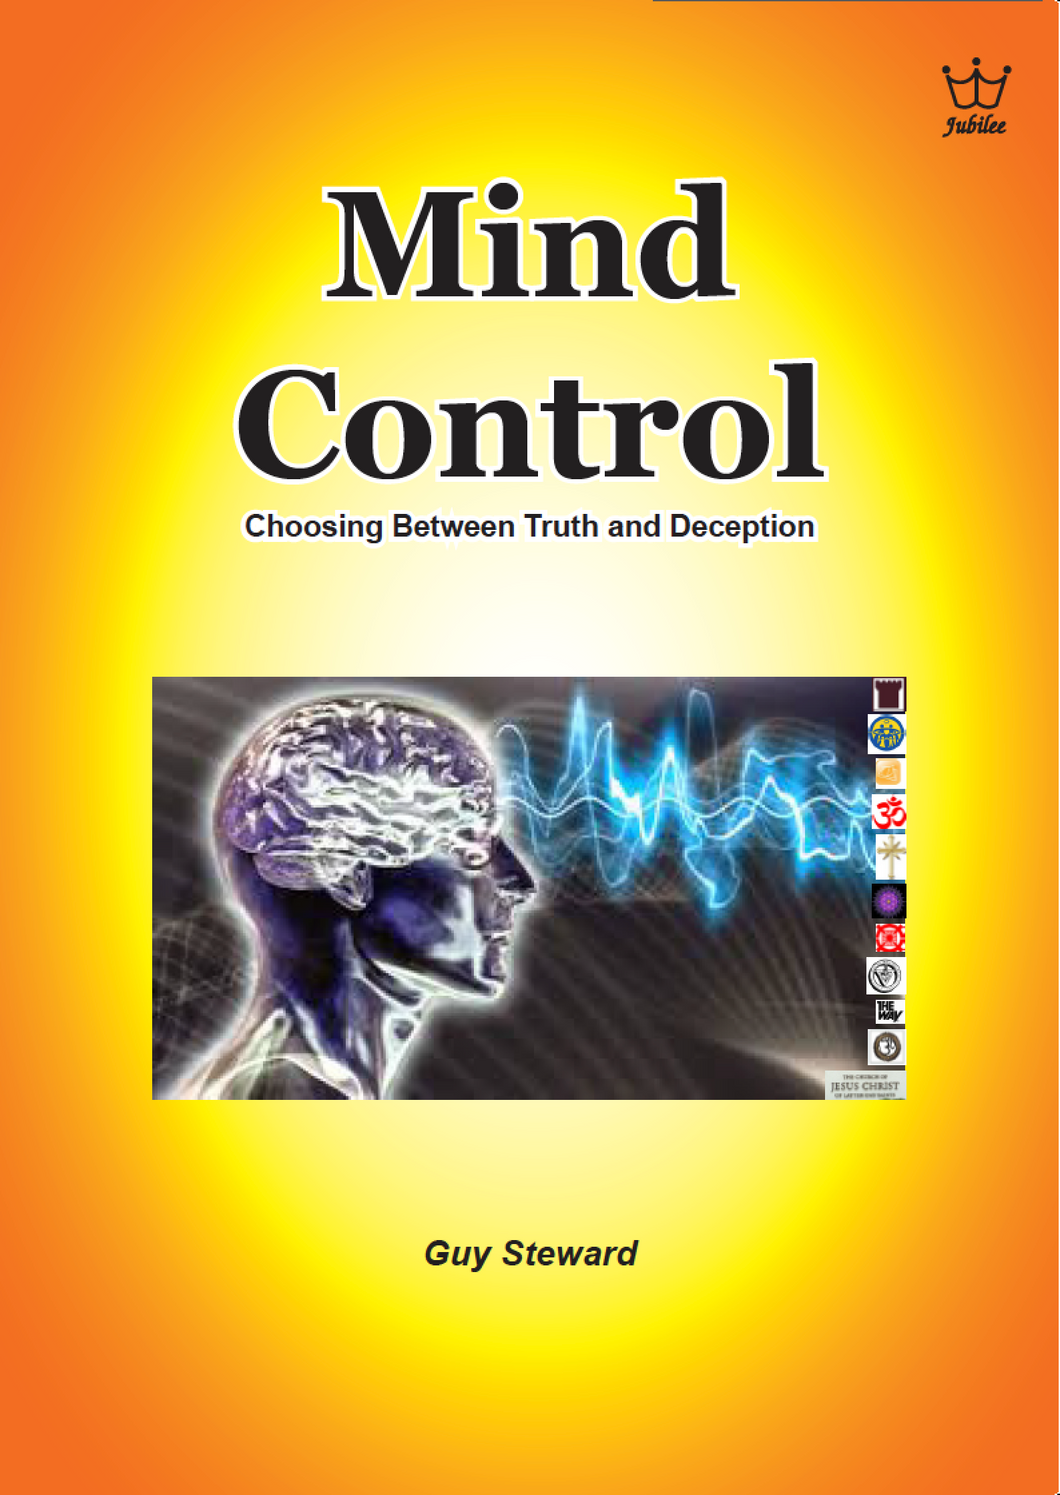 Mind Control: Choosing Between Truth & Deception. book #BMCS